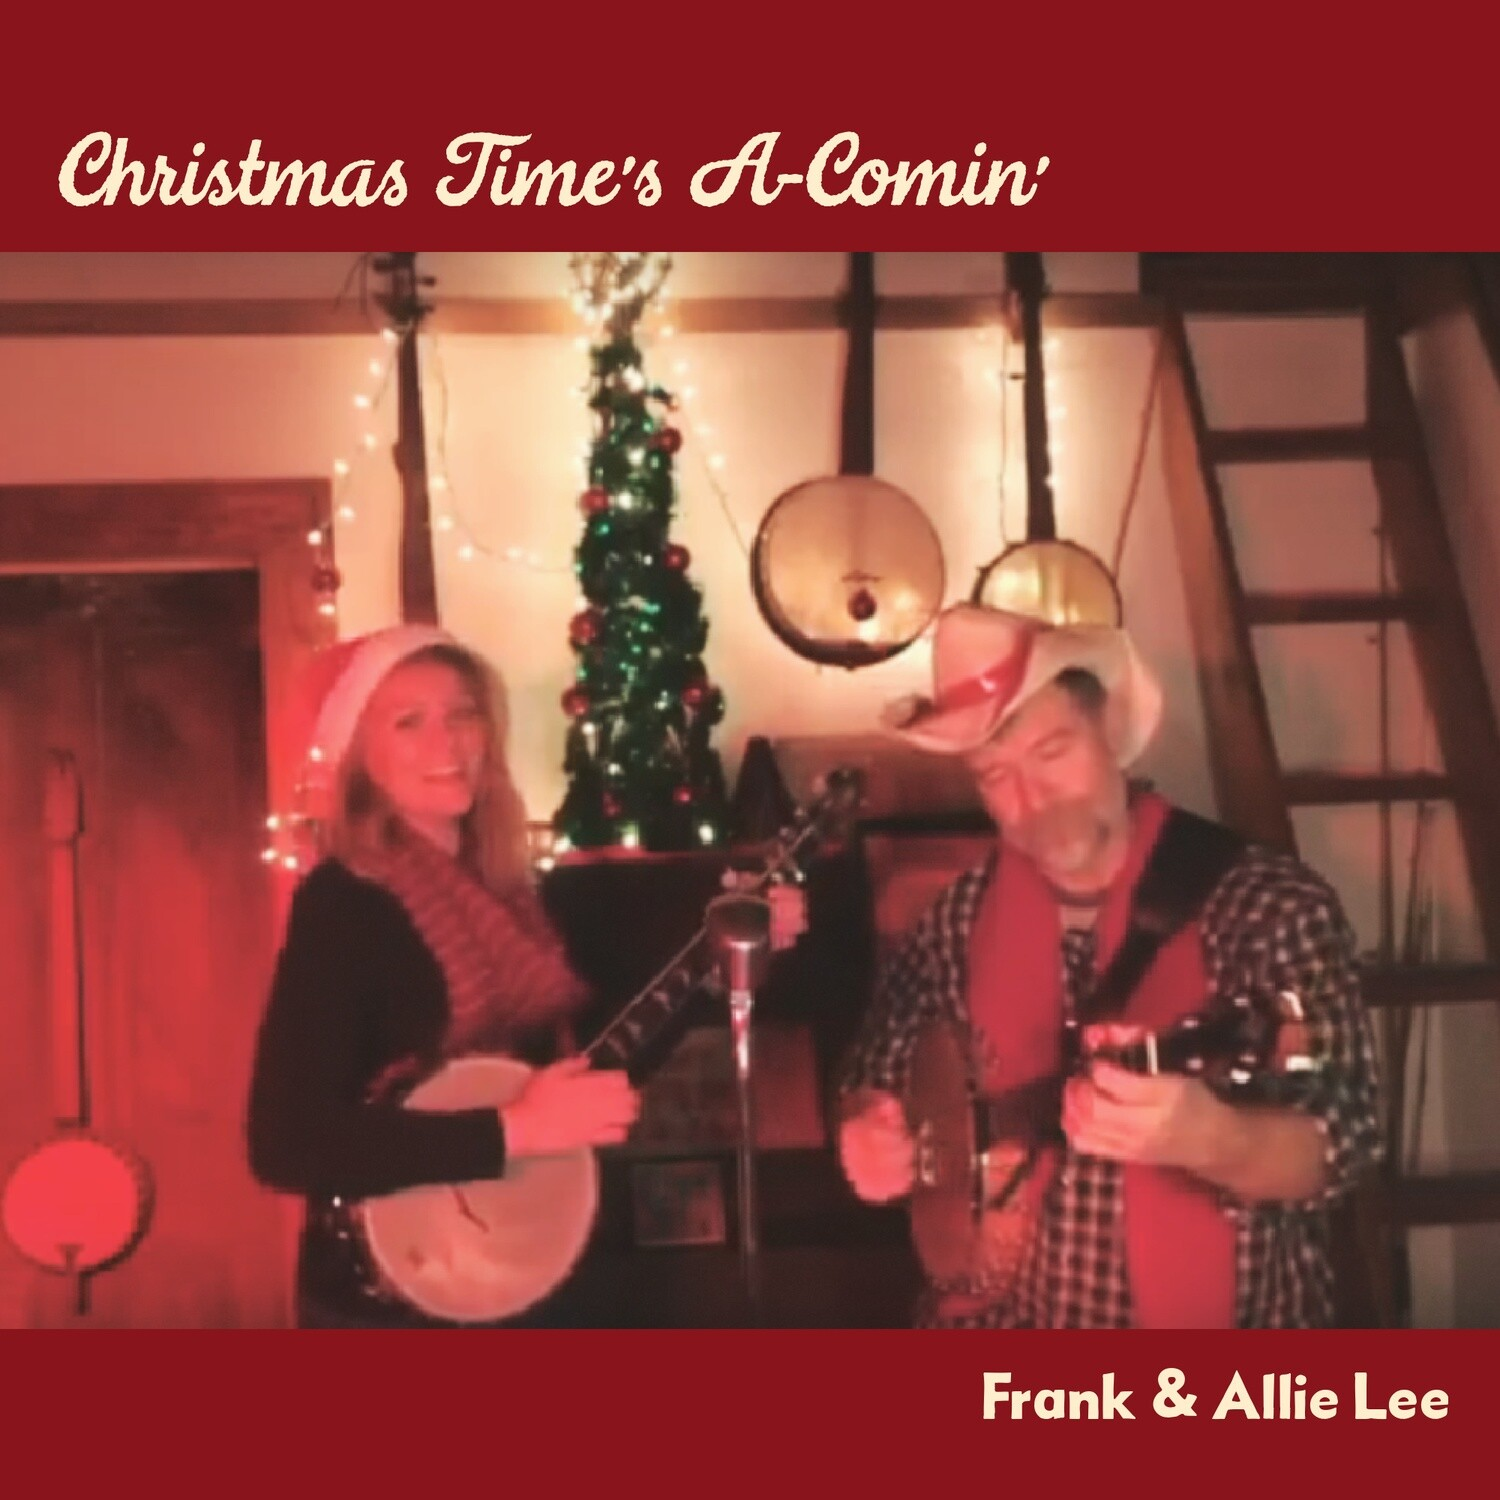 Christmas Time's A-Comin' - DOWNLOAD ONLY